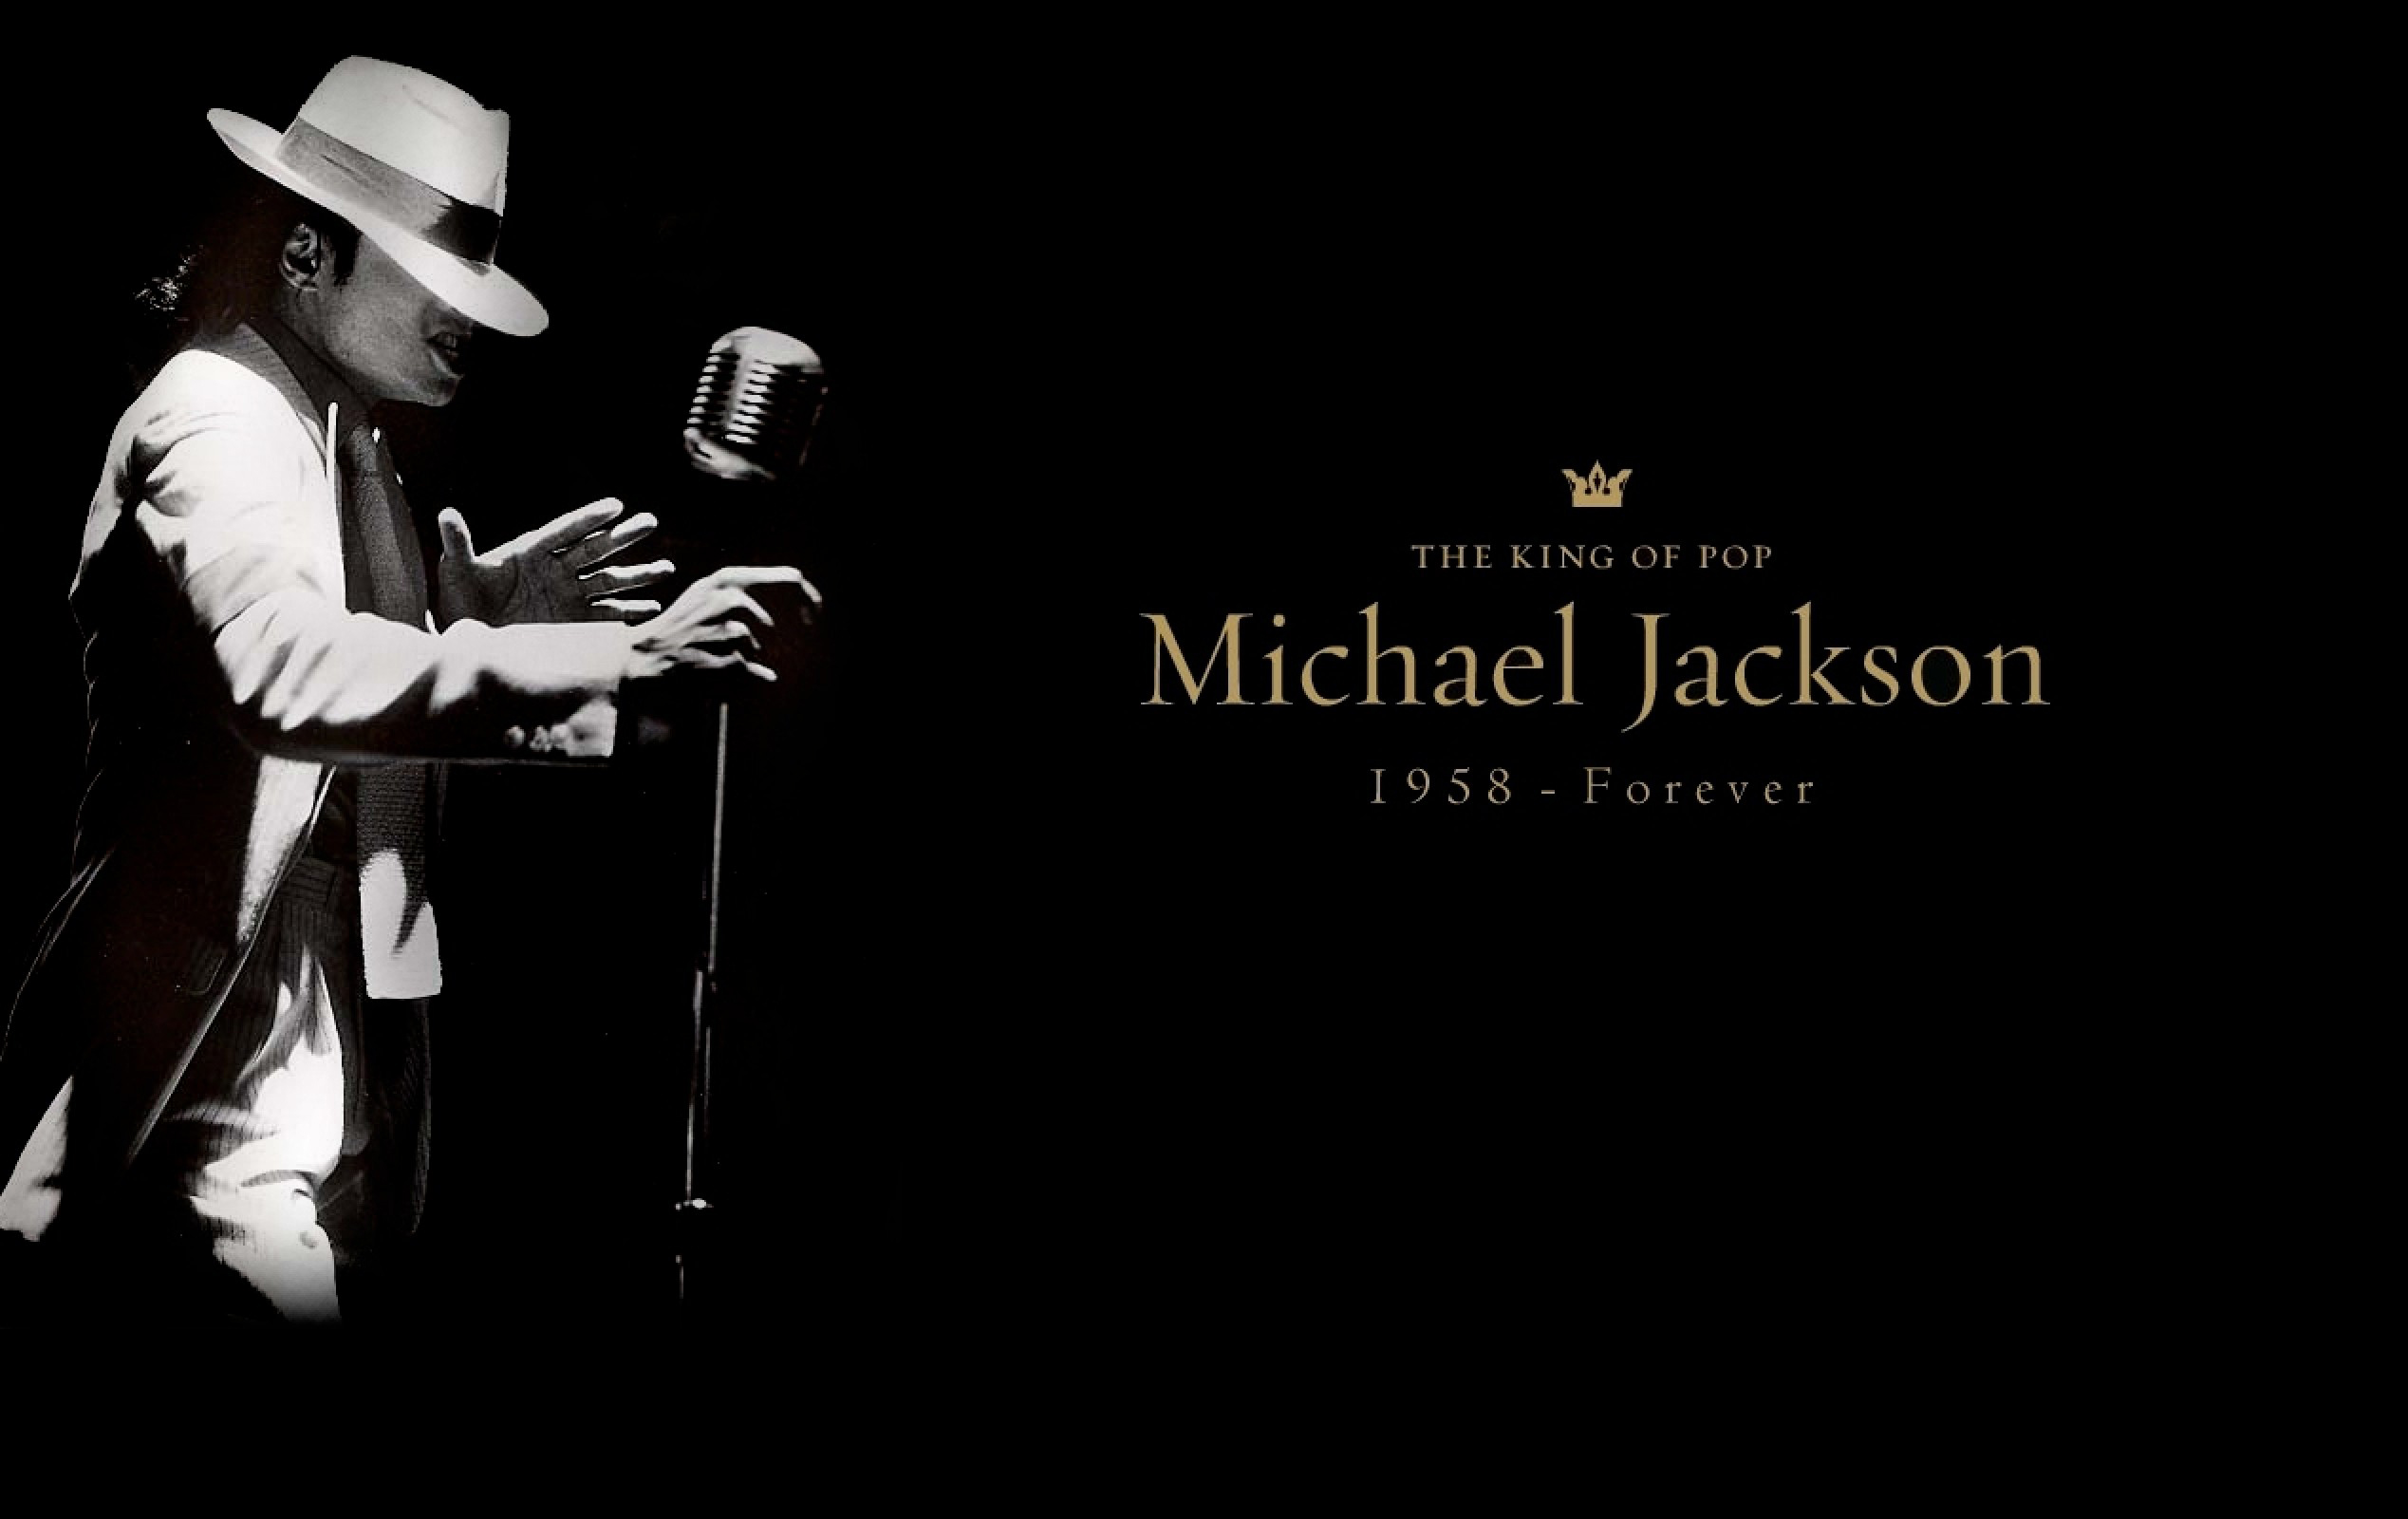 Michael Jackson King Of Pop Photoshoot Full HD 2K Wallpaper